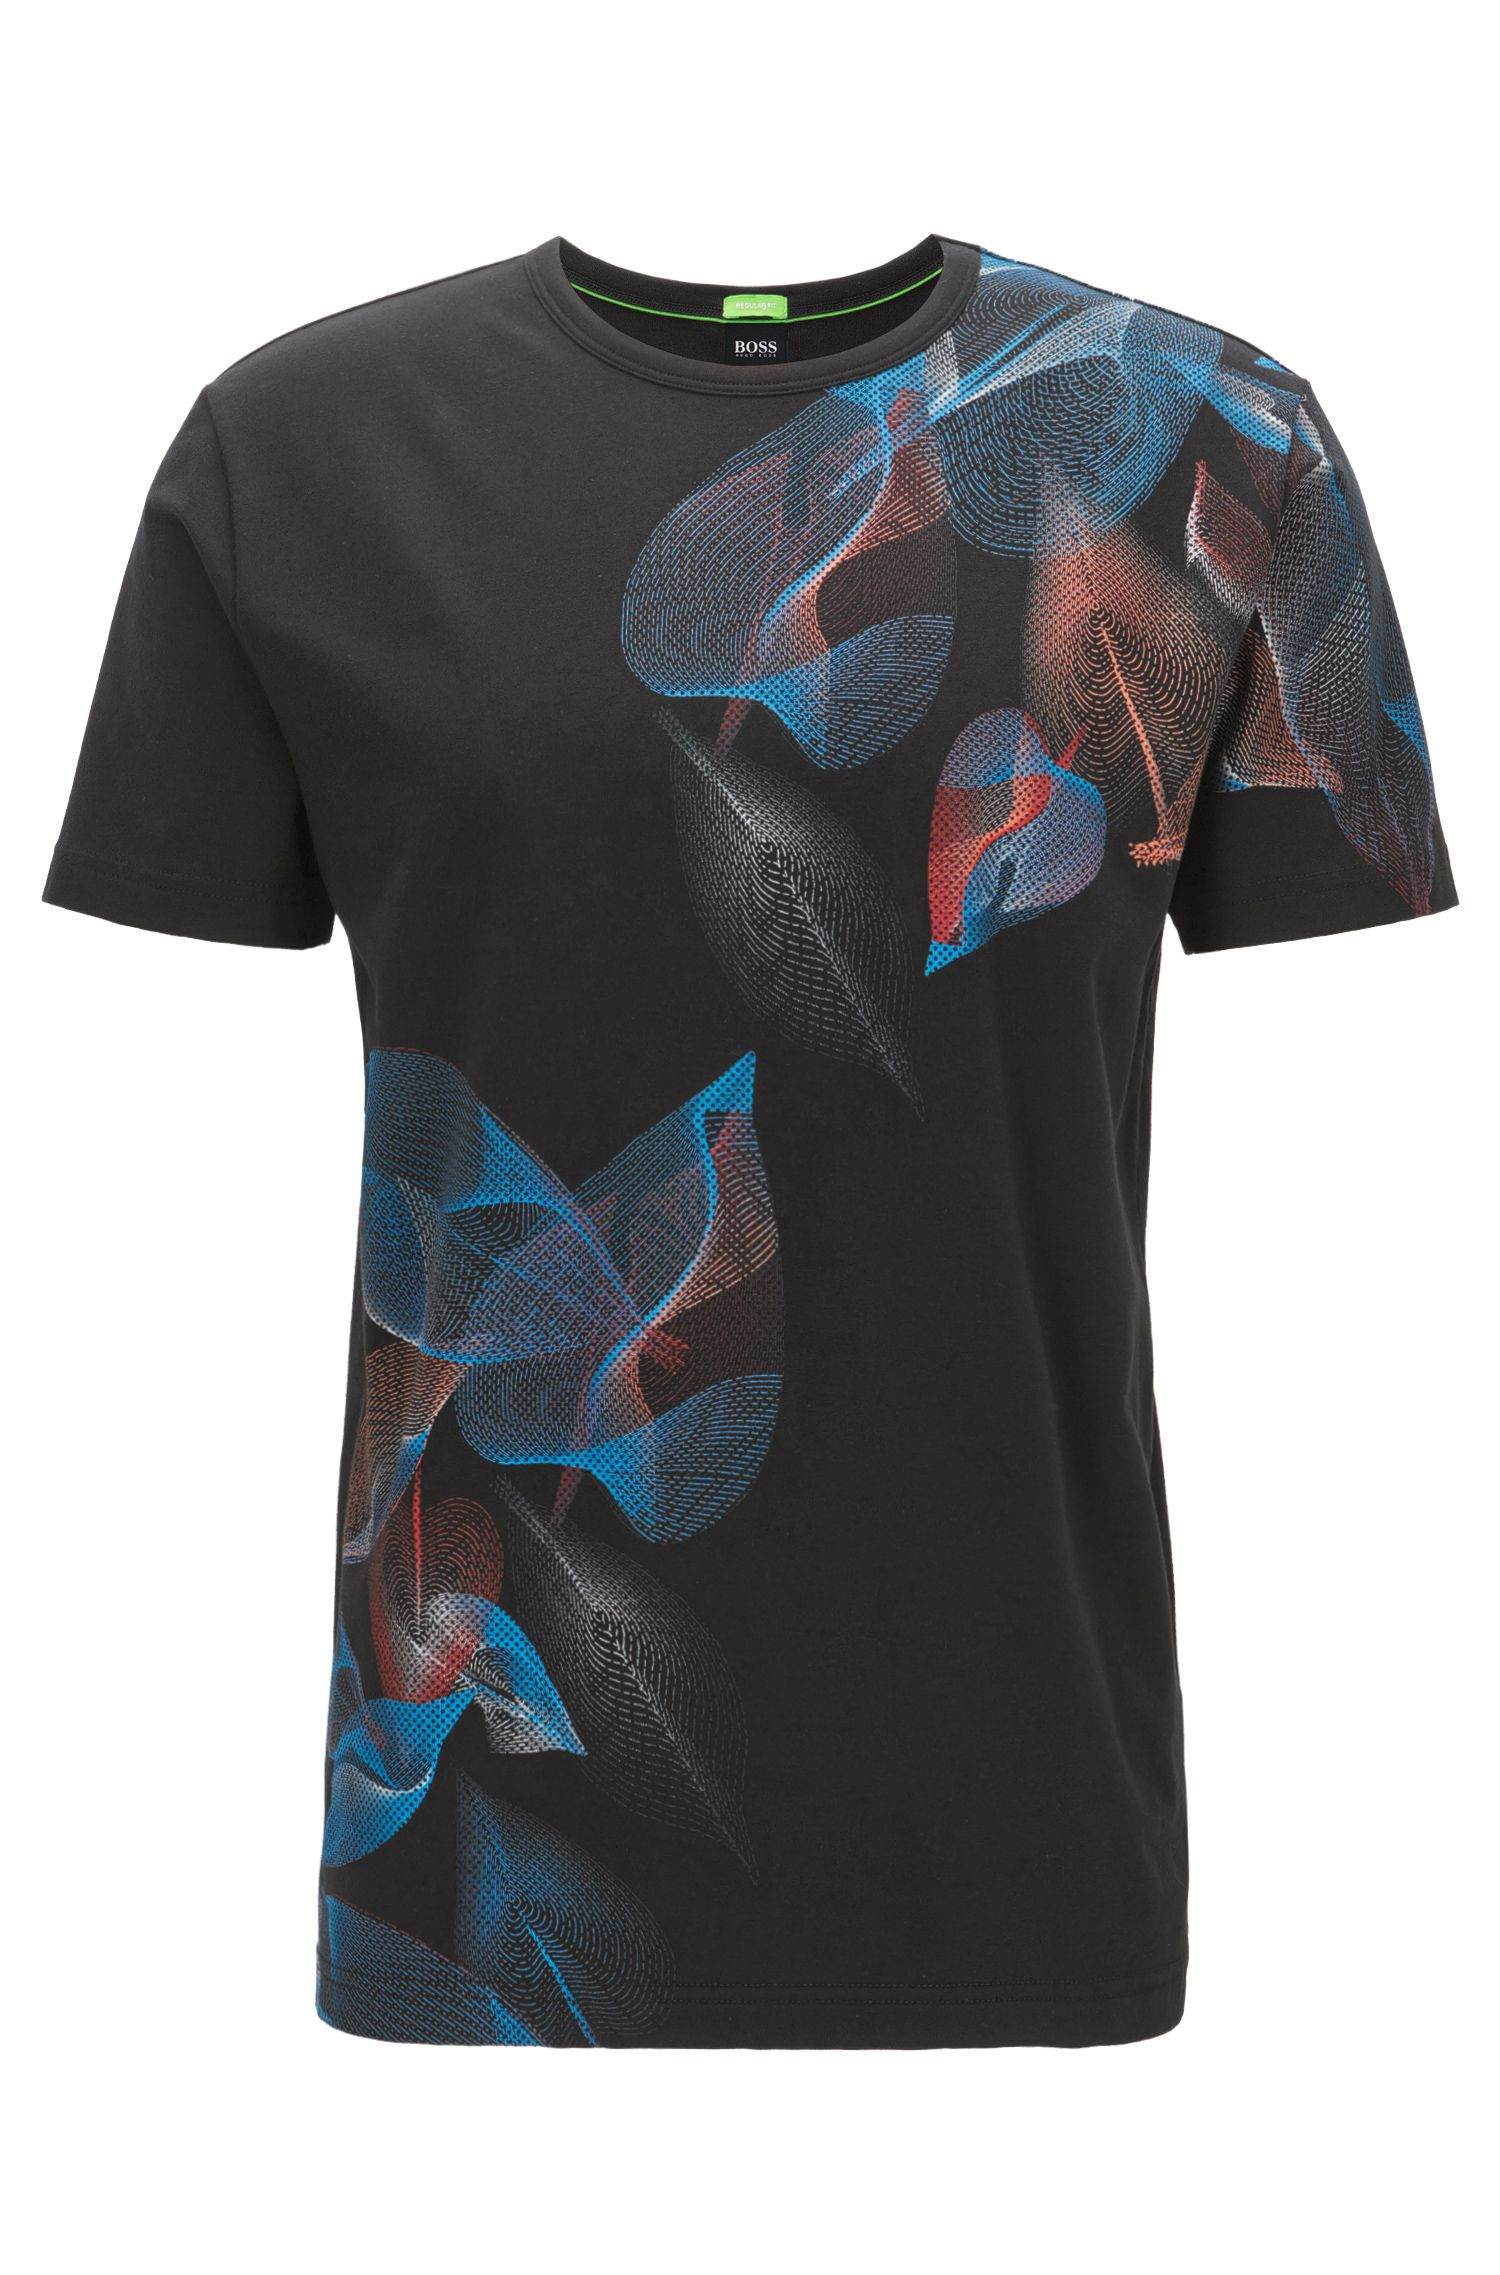 Floral-Print Stretch Cotton Graphic T-Shirt, Regular Fit | Tee